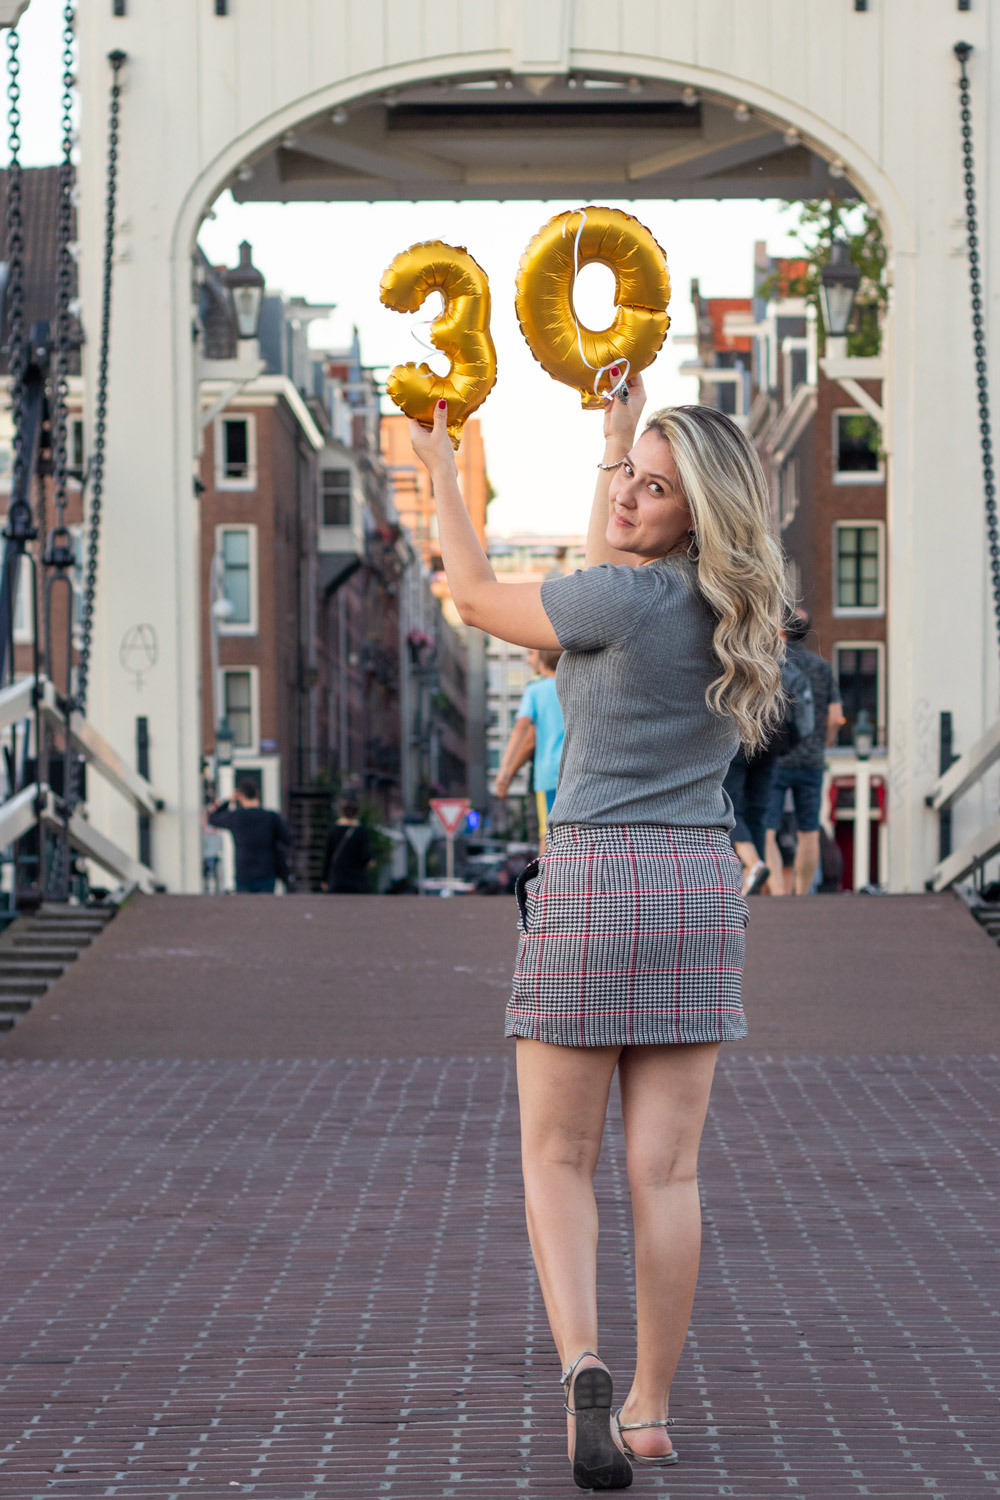 Birthday photo from a photosession in Amsterdam. Travel memories to carry forever.